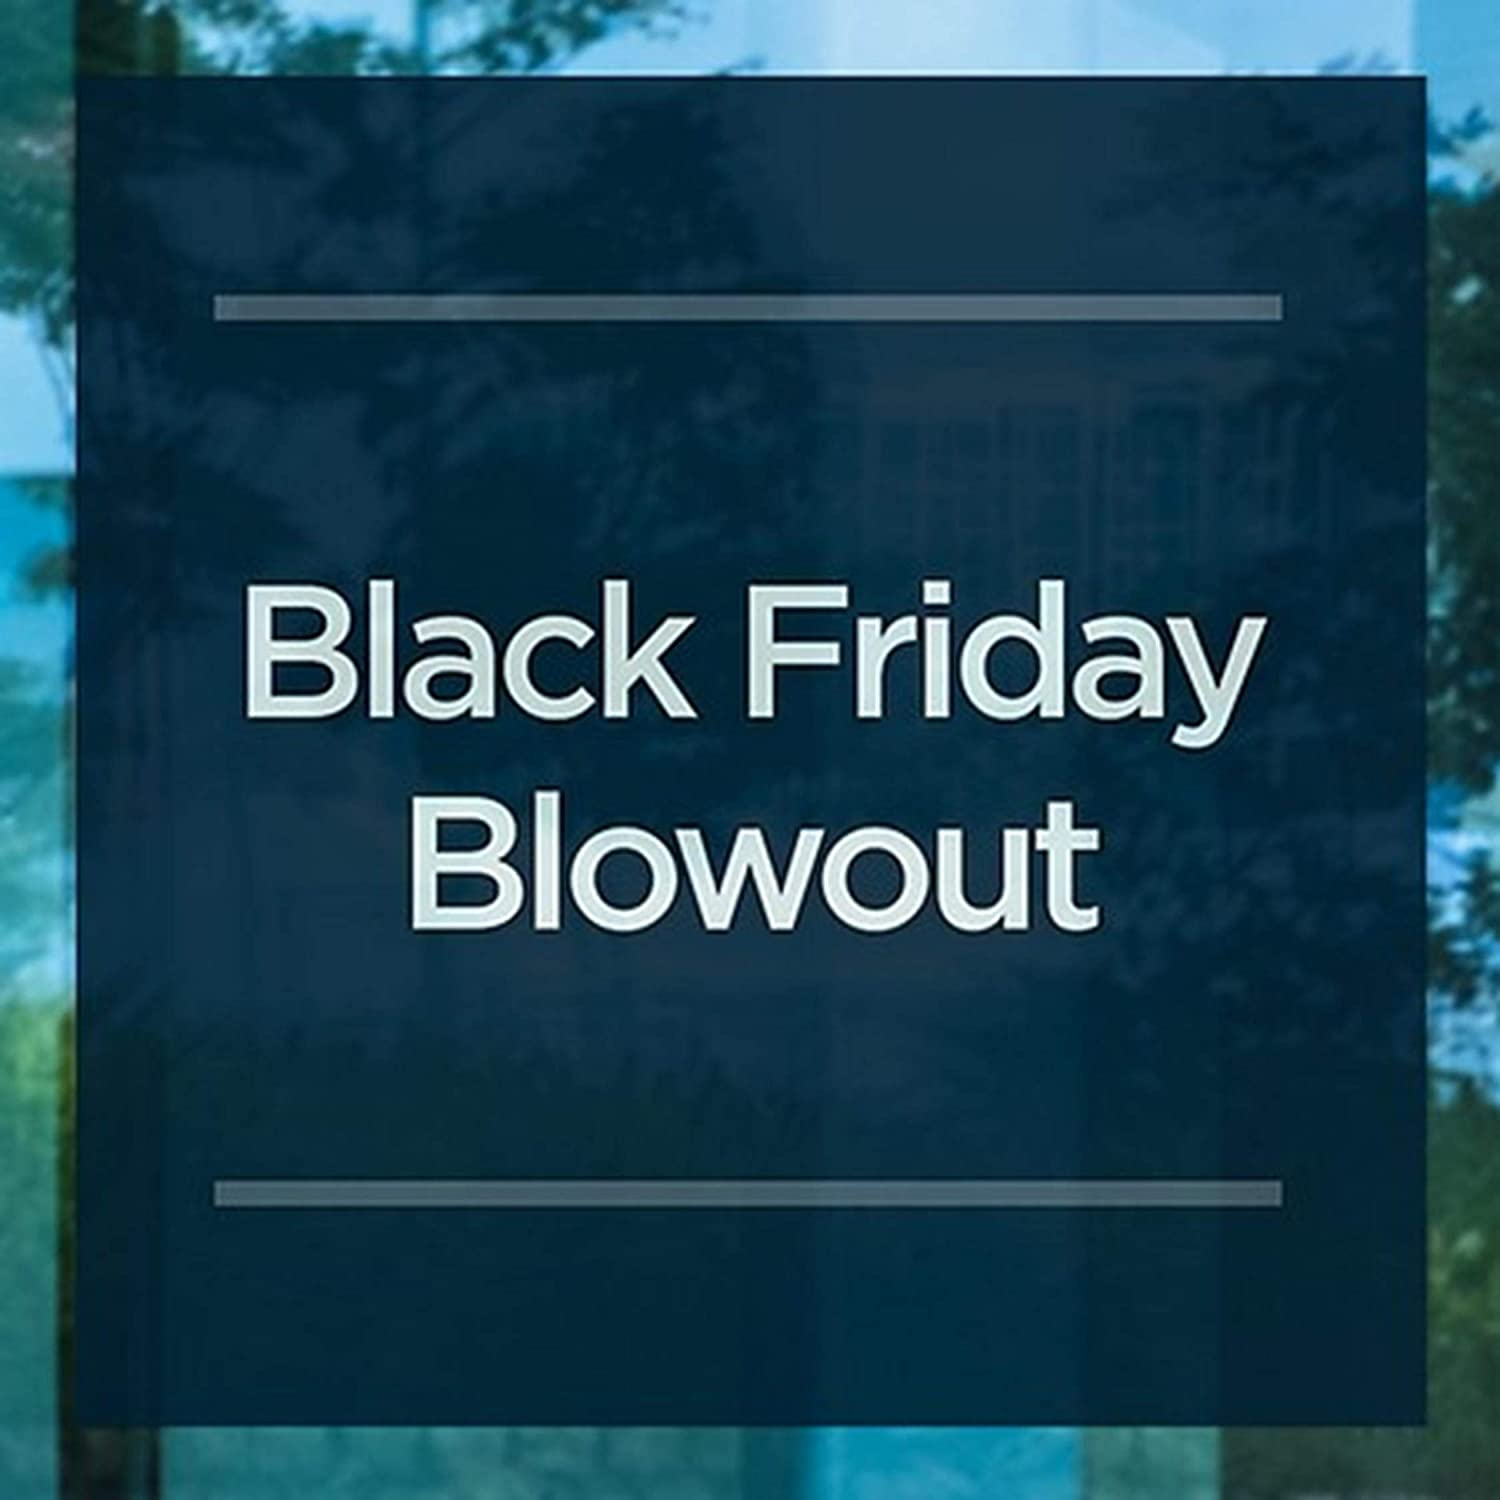 Black Friday Blowout 24x24 CGSignLab Basic Navy Clear Window Cling 5-Pack